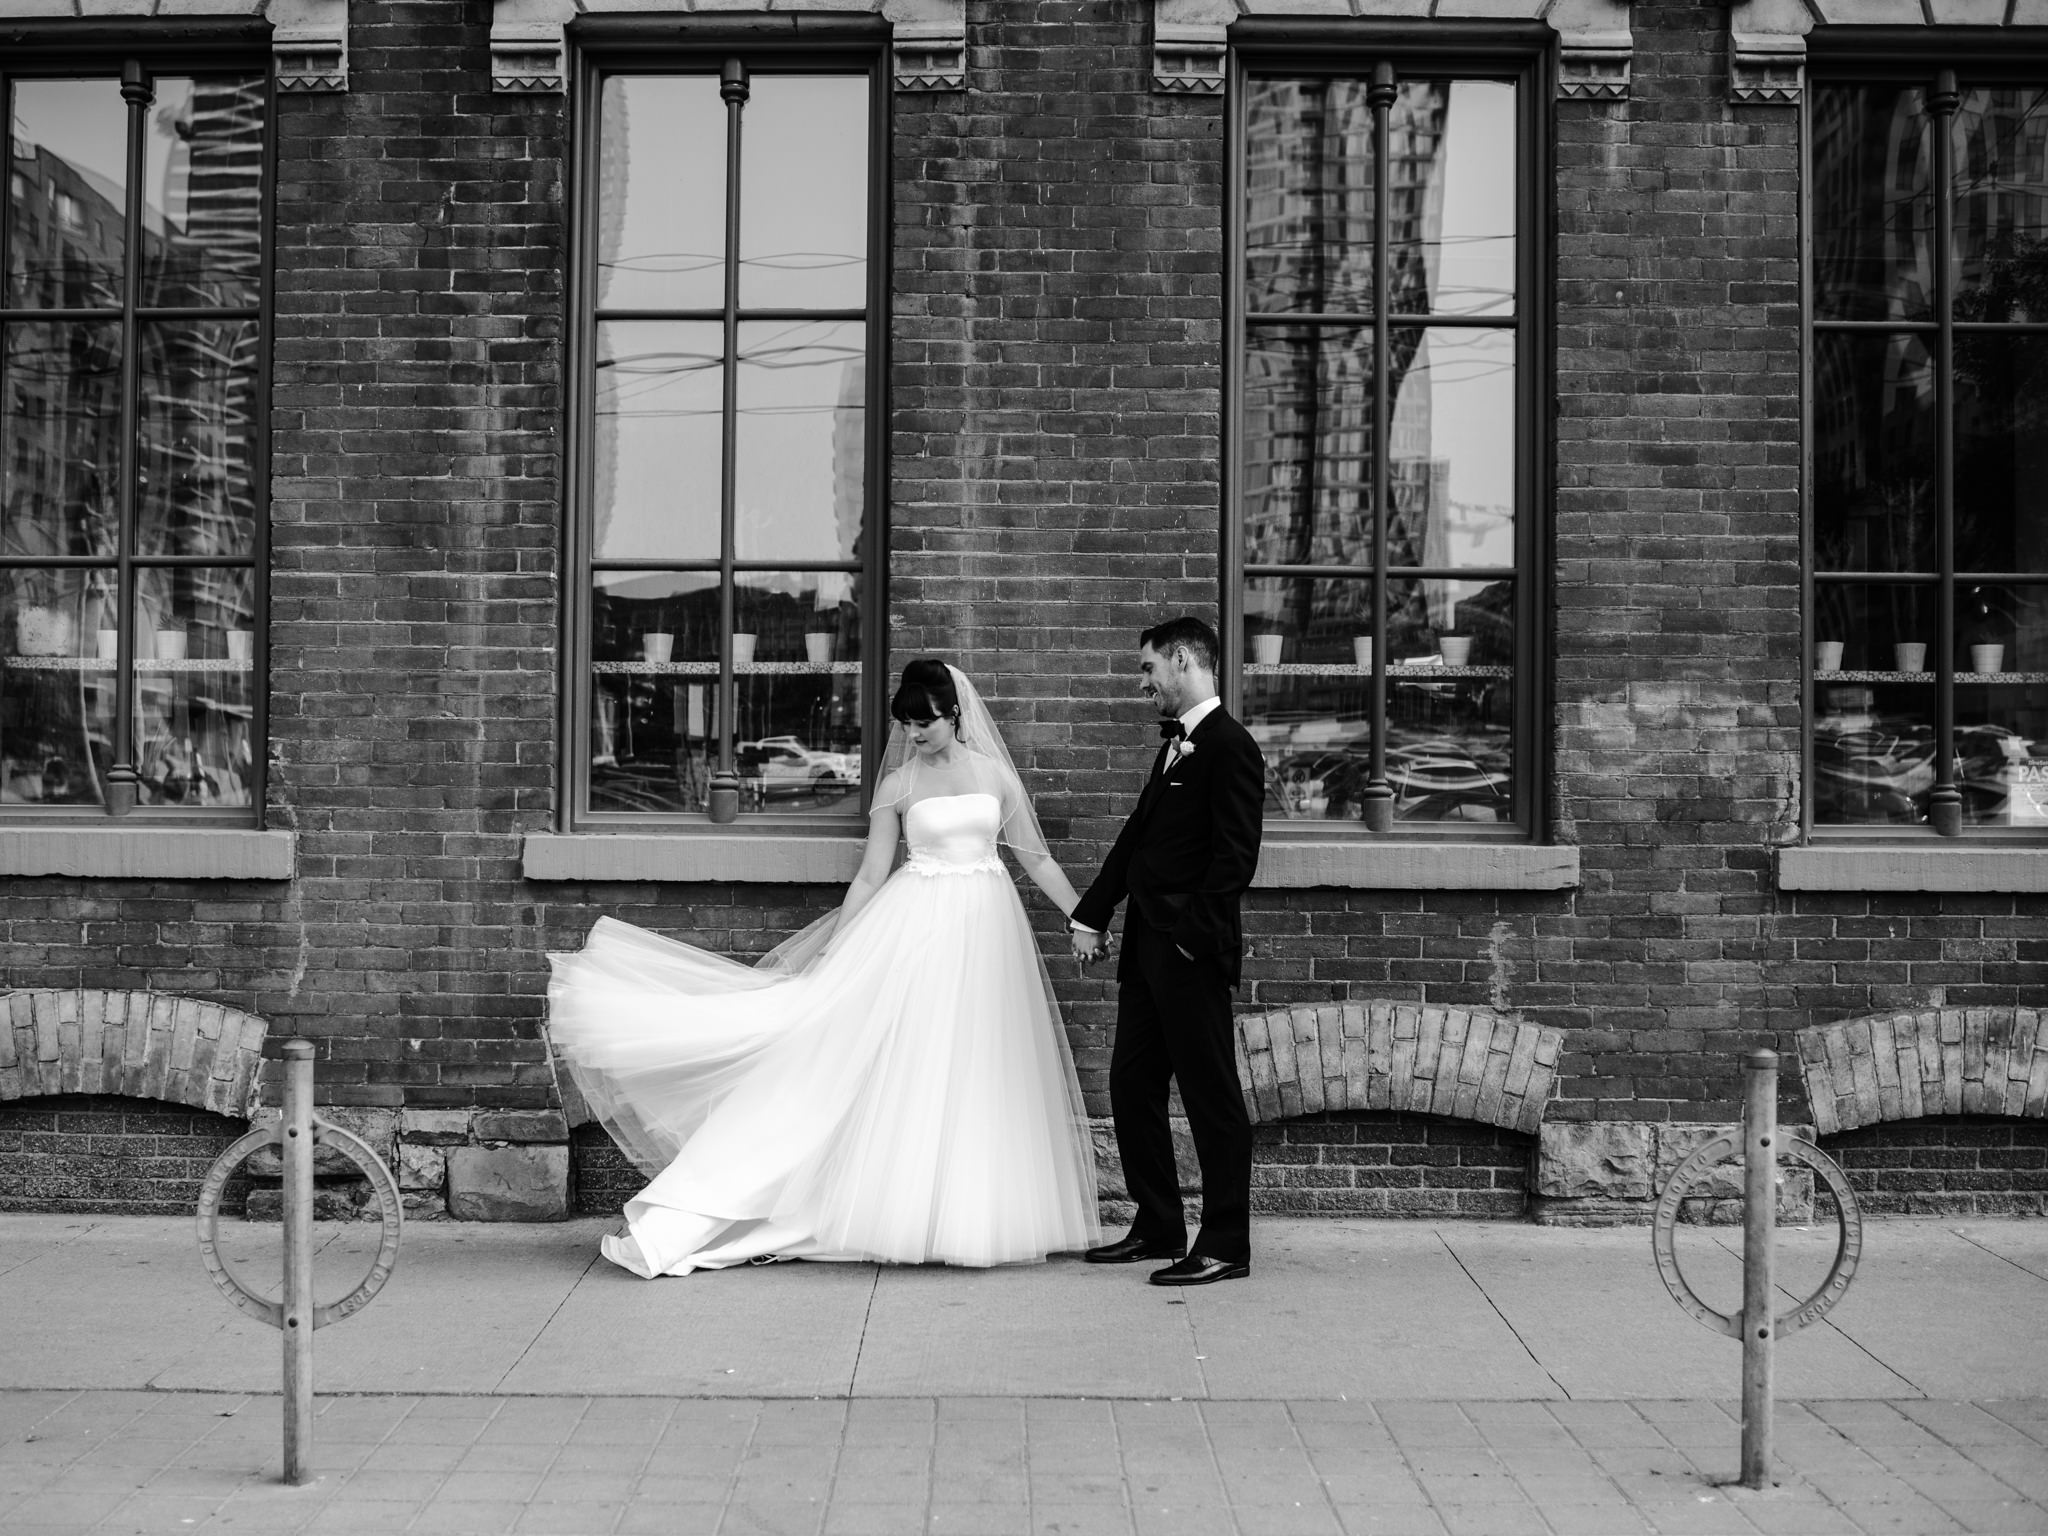 queen-street-george-restaurant-wedding-photographer-3queen-street-george-restaurant-wedding-photographer-3